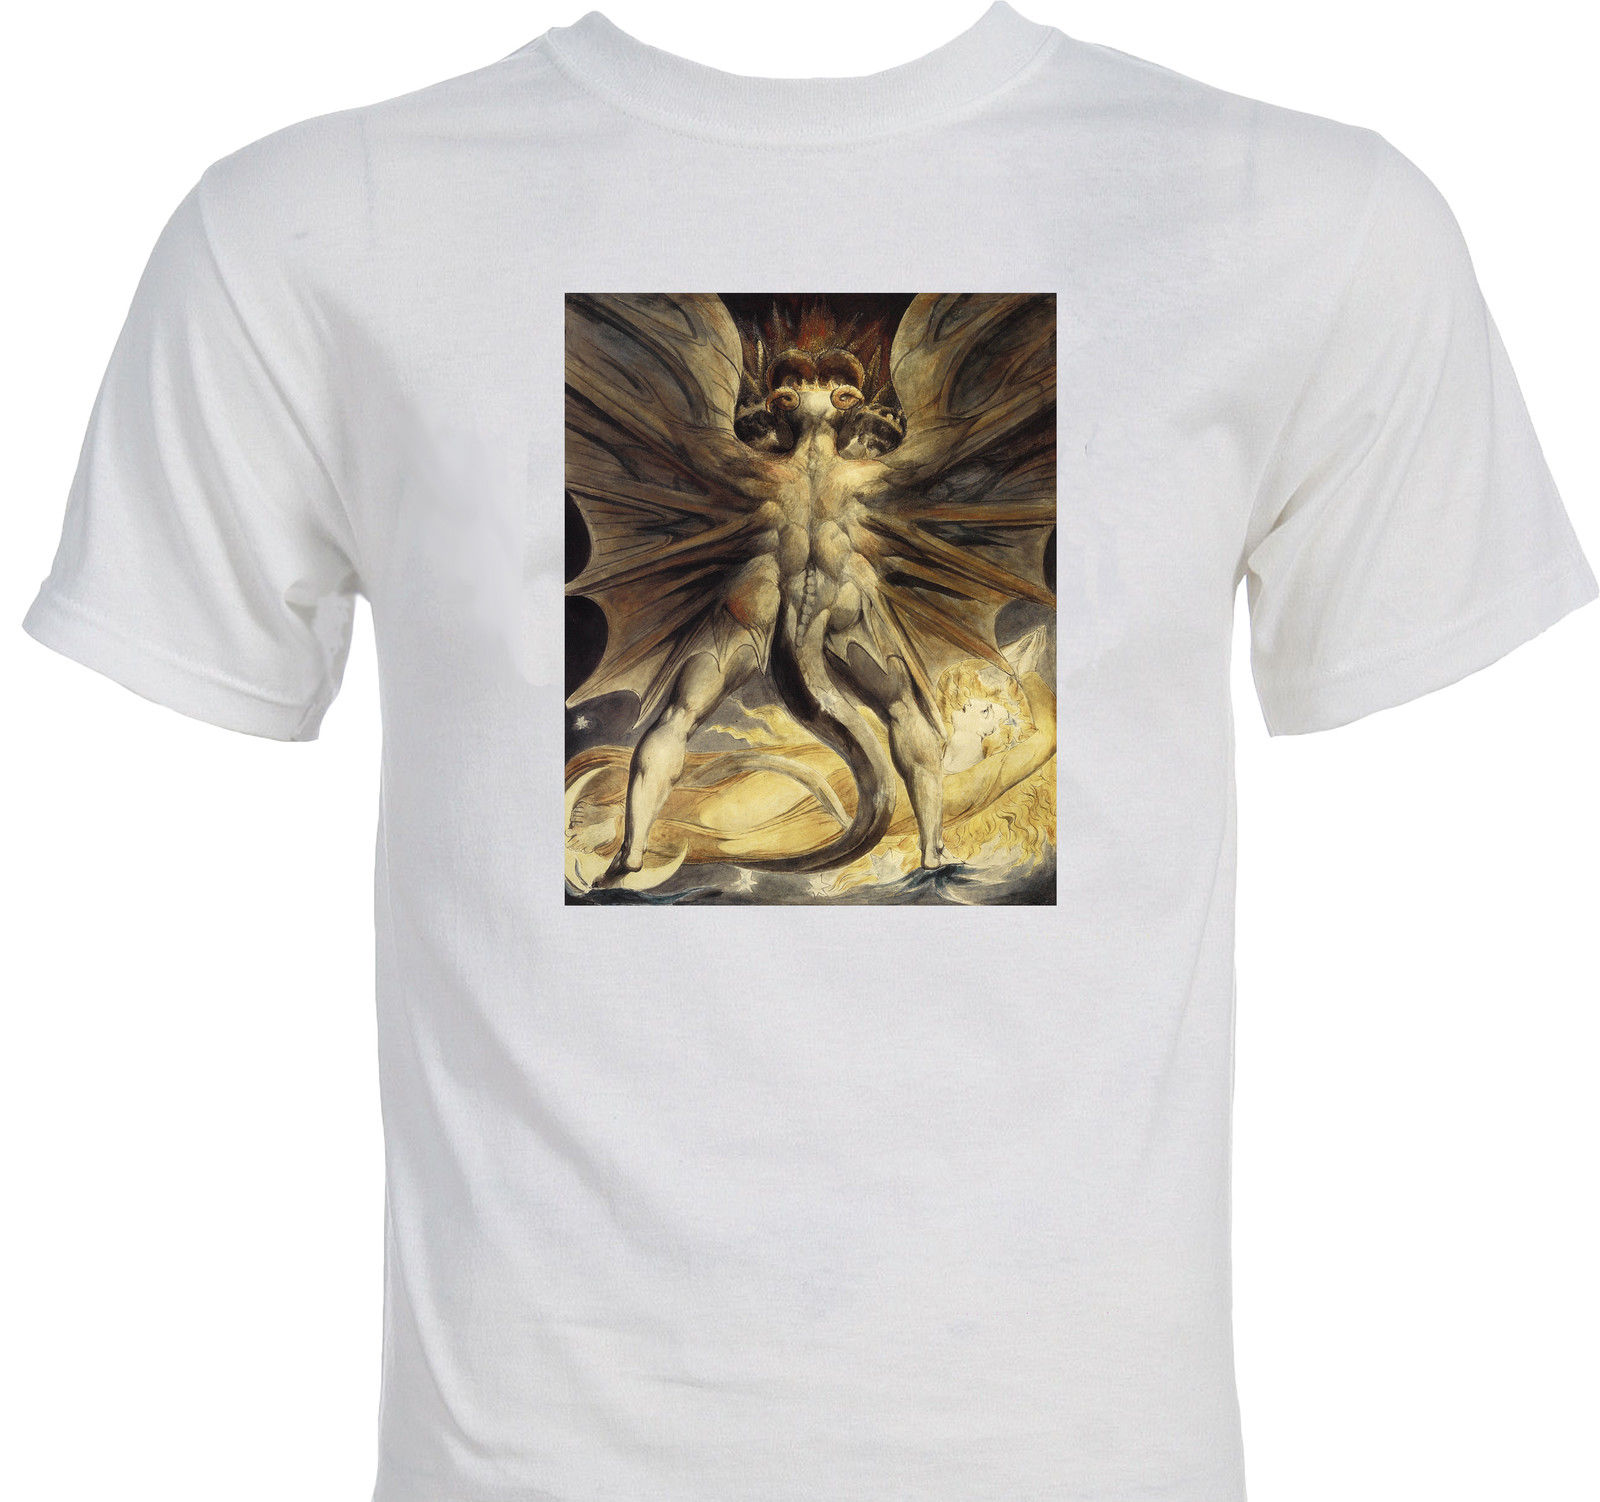 "William Blake ""Dragon and the Woman Clothed in Sun"" Mystical New Age T-shirt Cool Casual pride t shirt men Unisex Fashion"